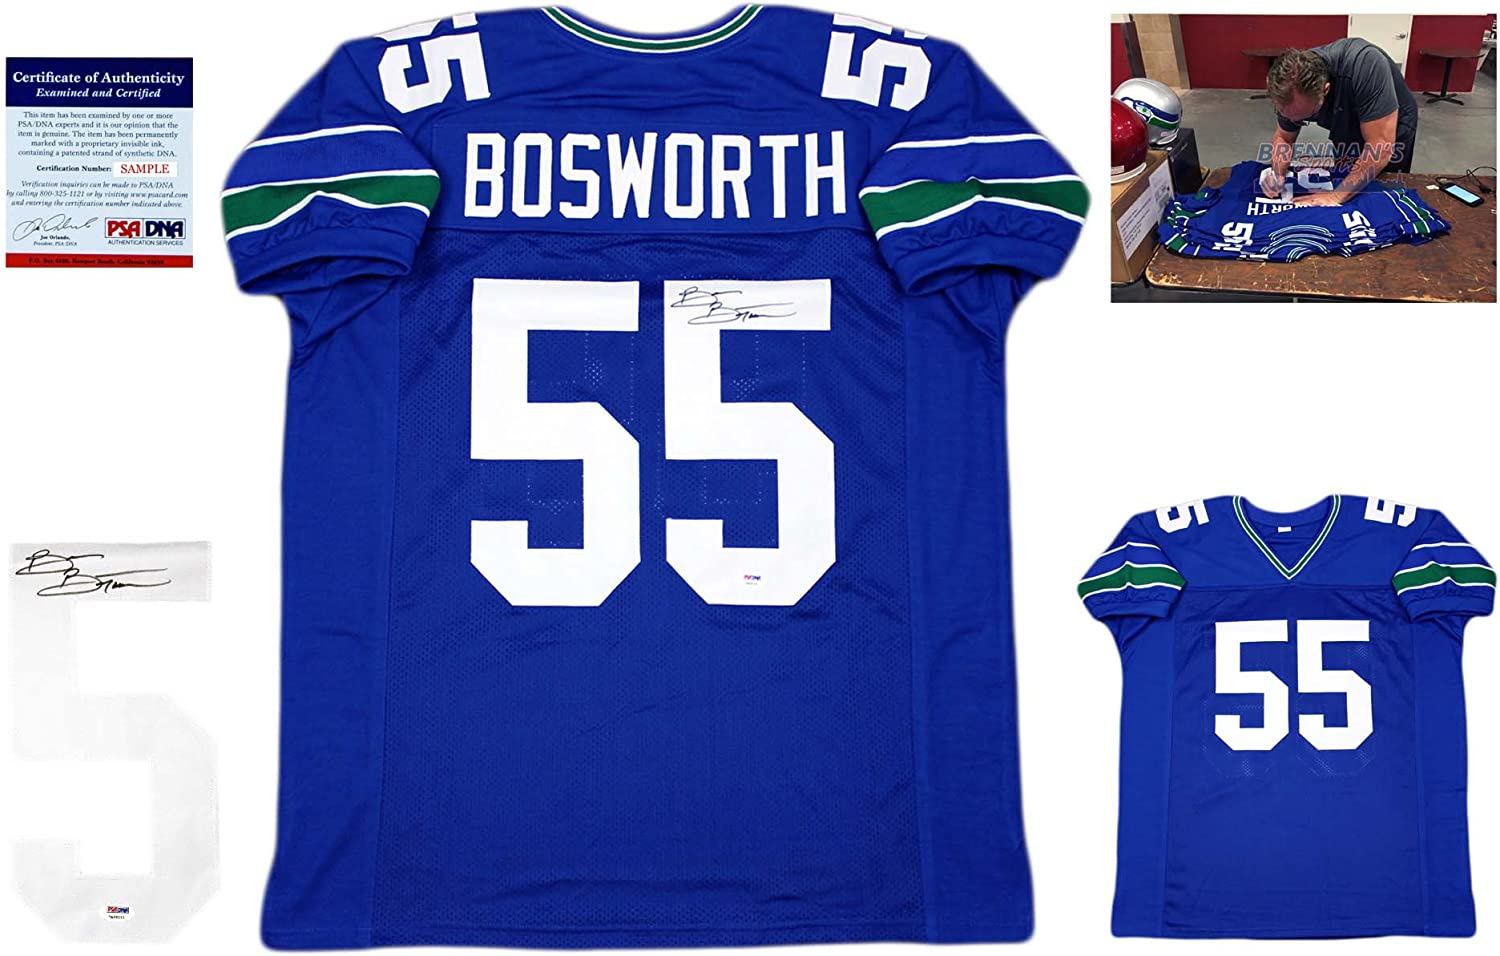 Brian Bosworth Signed Custom Jersey - PSA/DNA - Pro Style Autographed - Royal